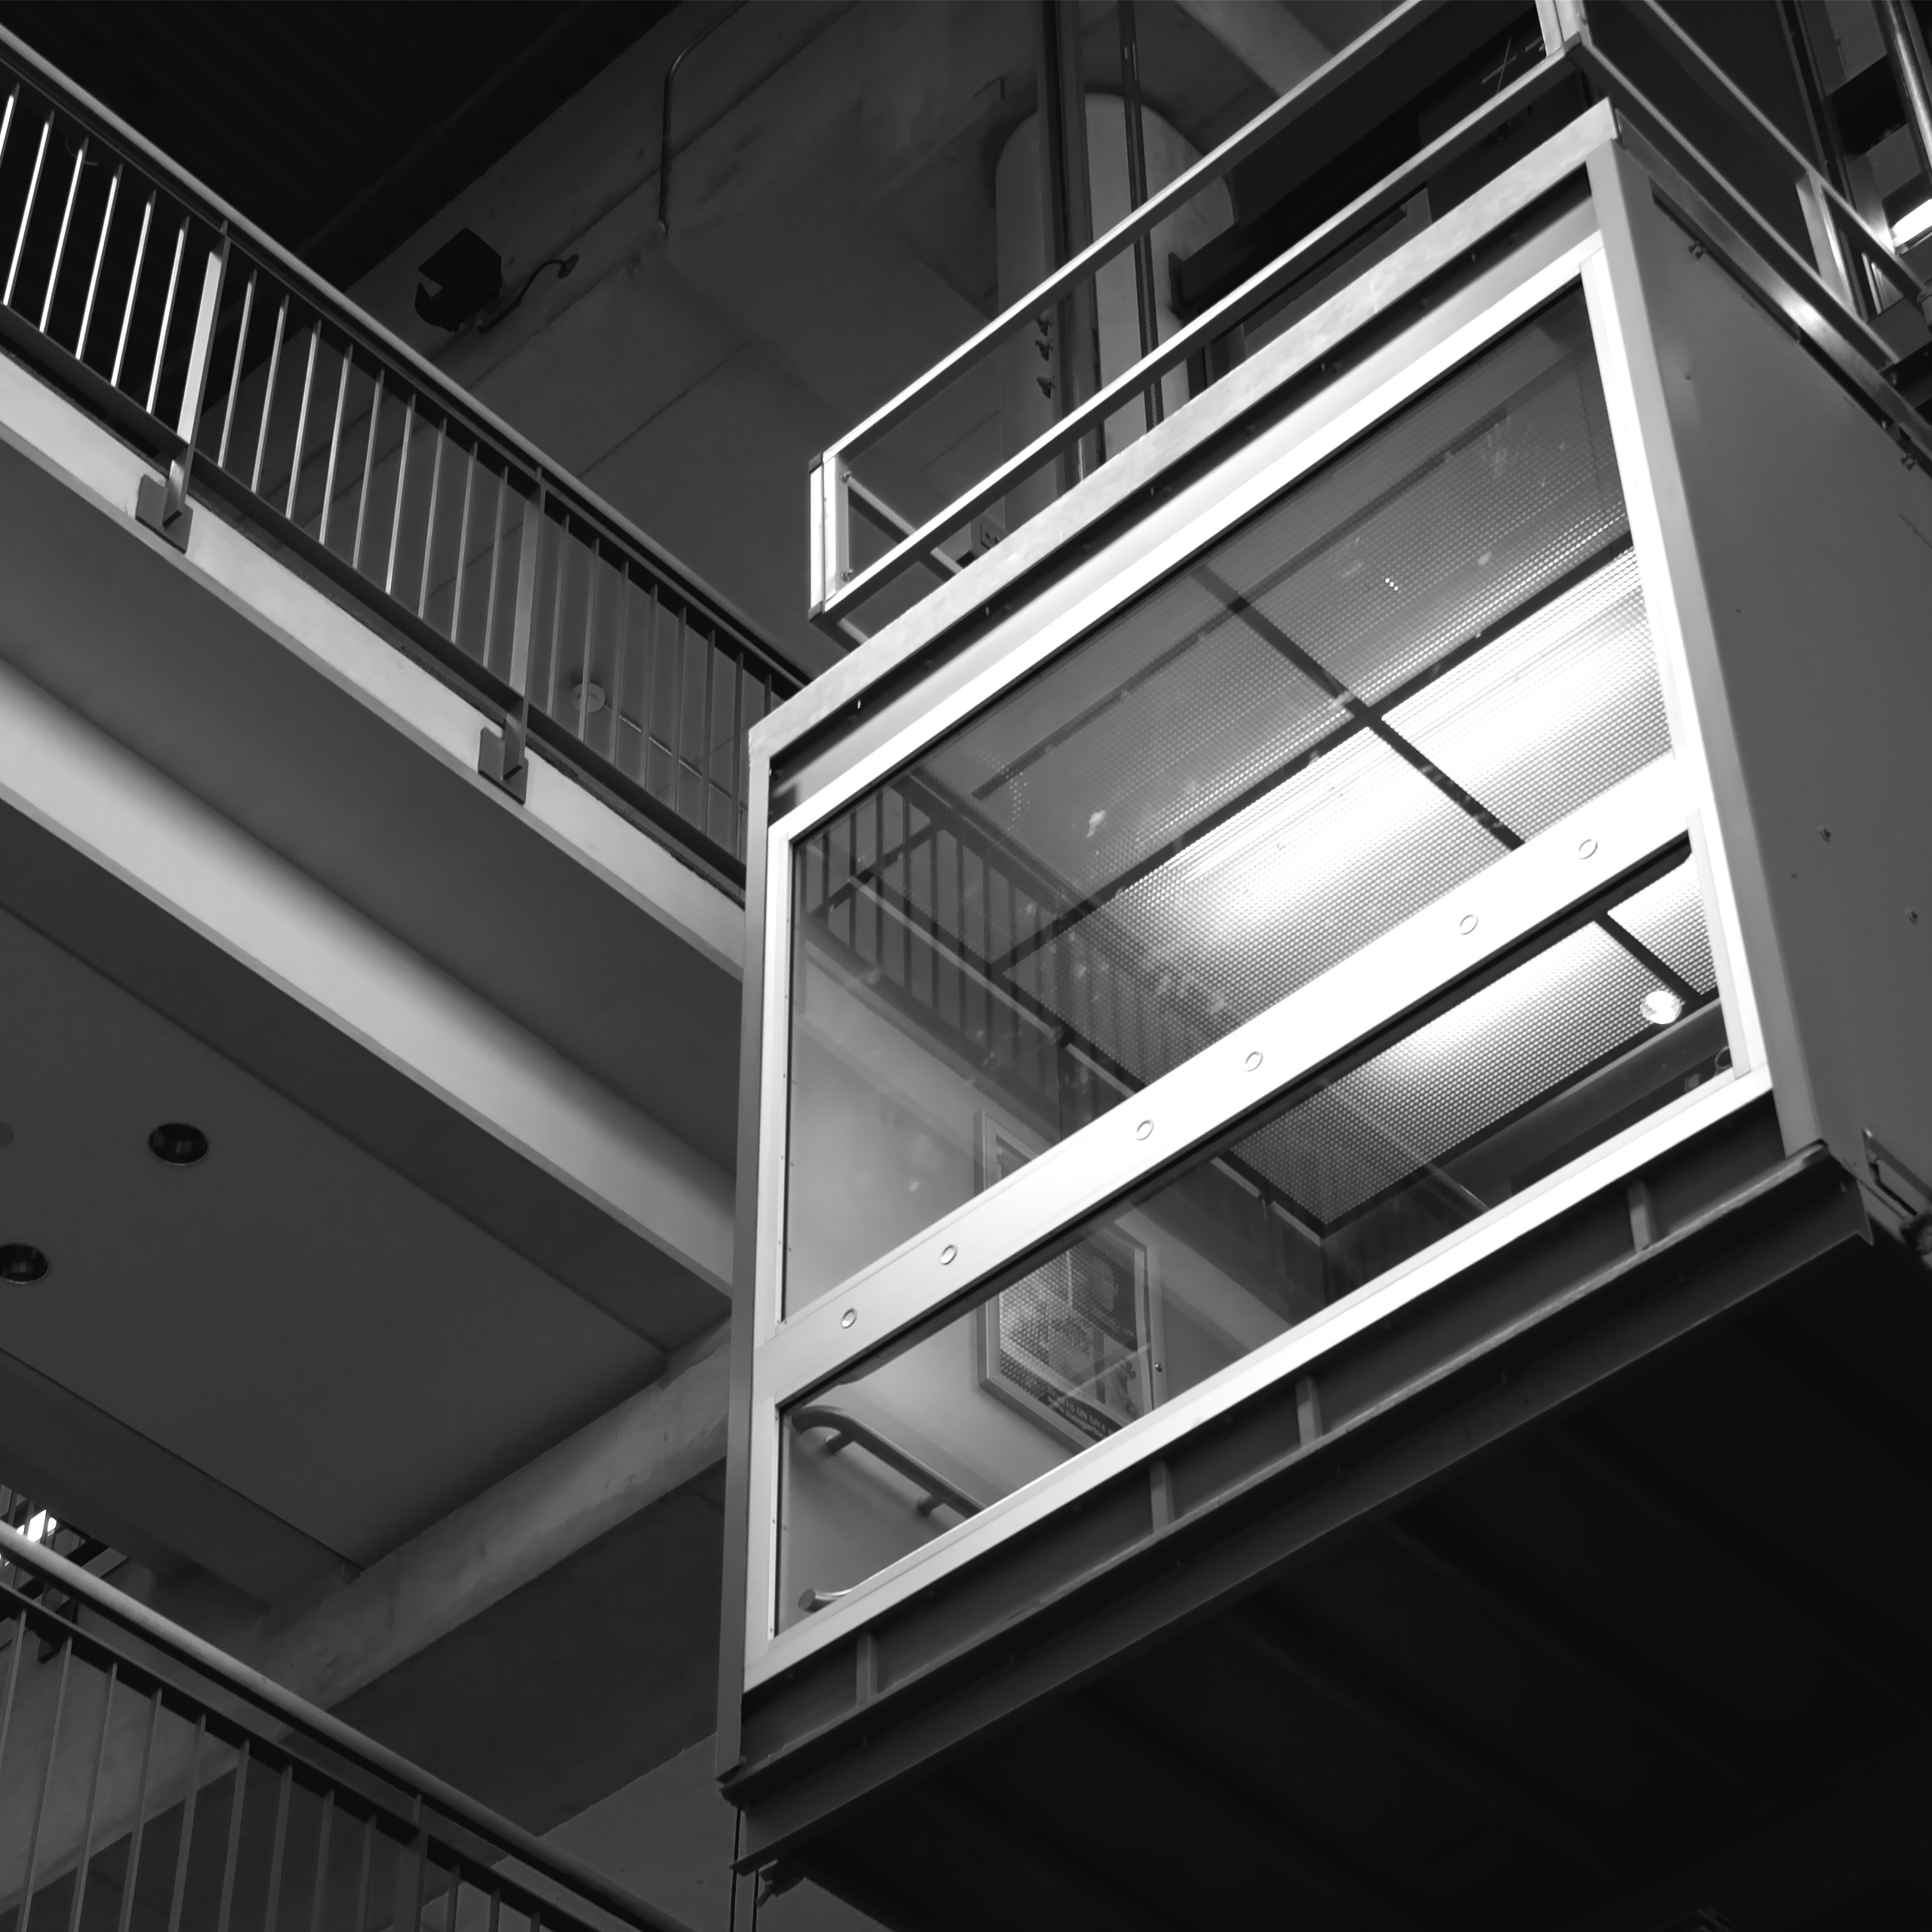 black and white lift modernisation